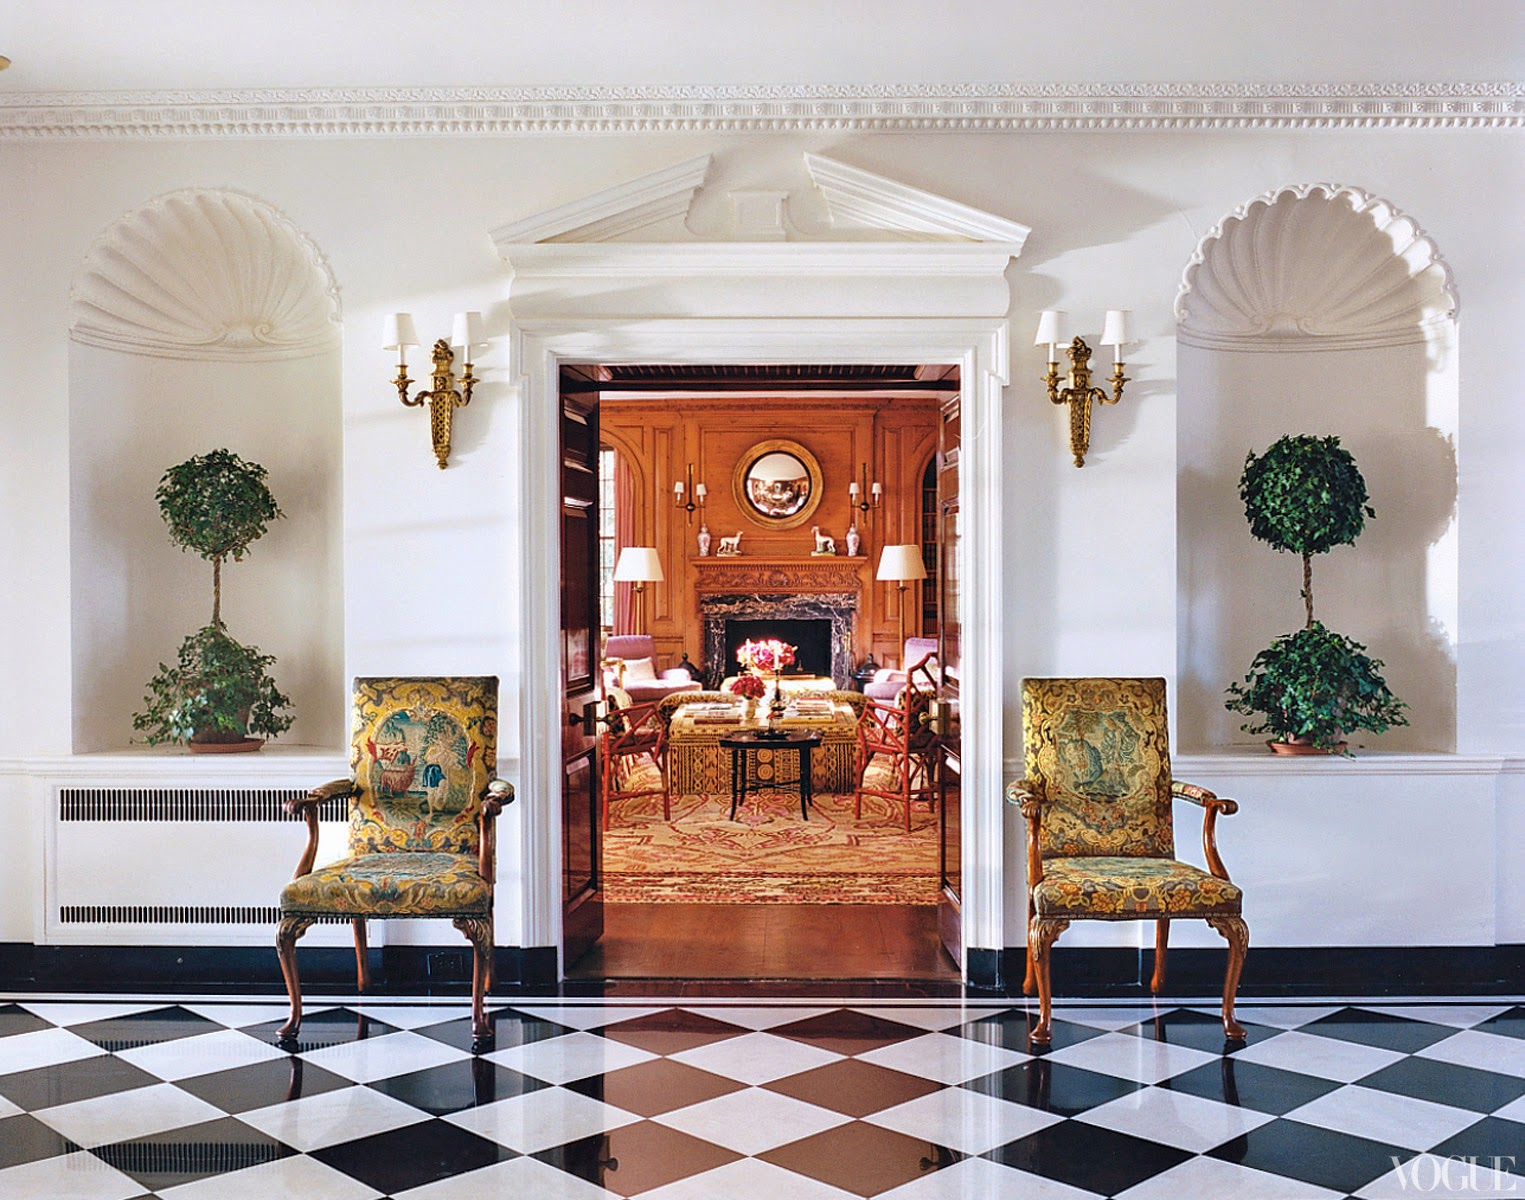 Decor Inspiration At Home With Tory Burch S Home Decorators Catalog Best Ideas of Home Decor and Design [homedecoratorscatalog.us]